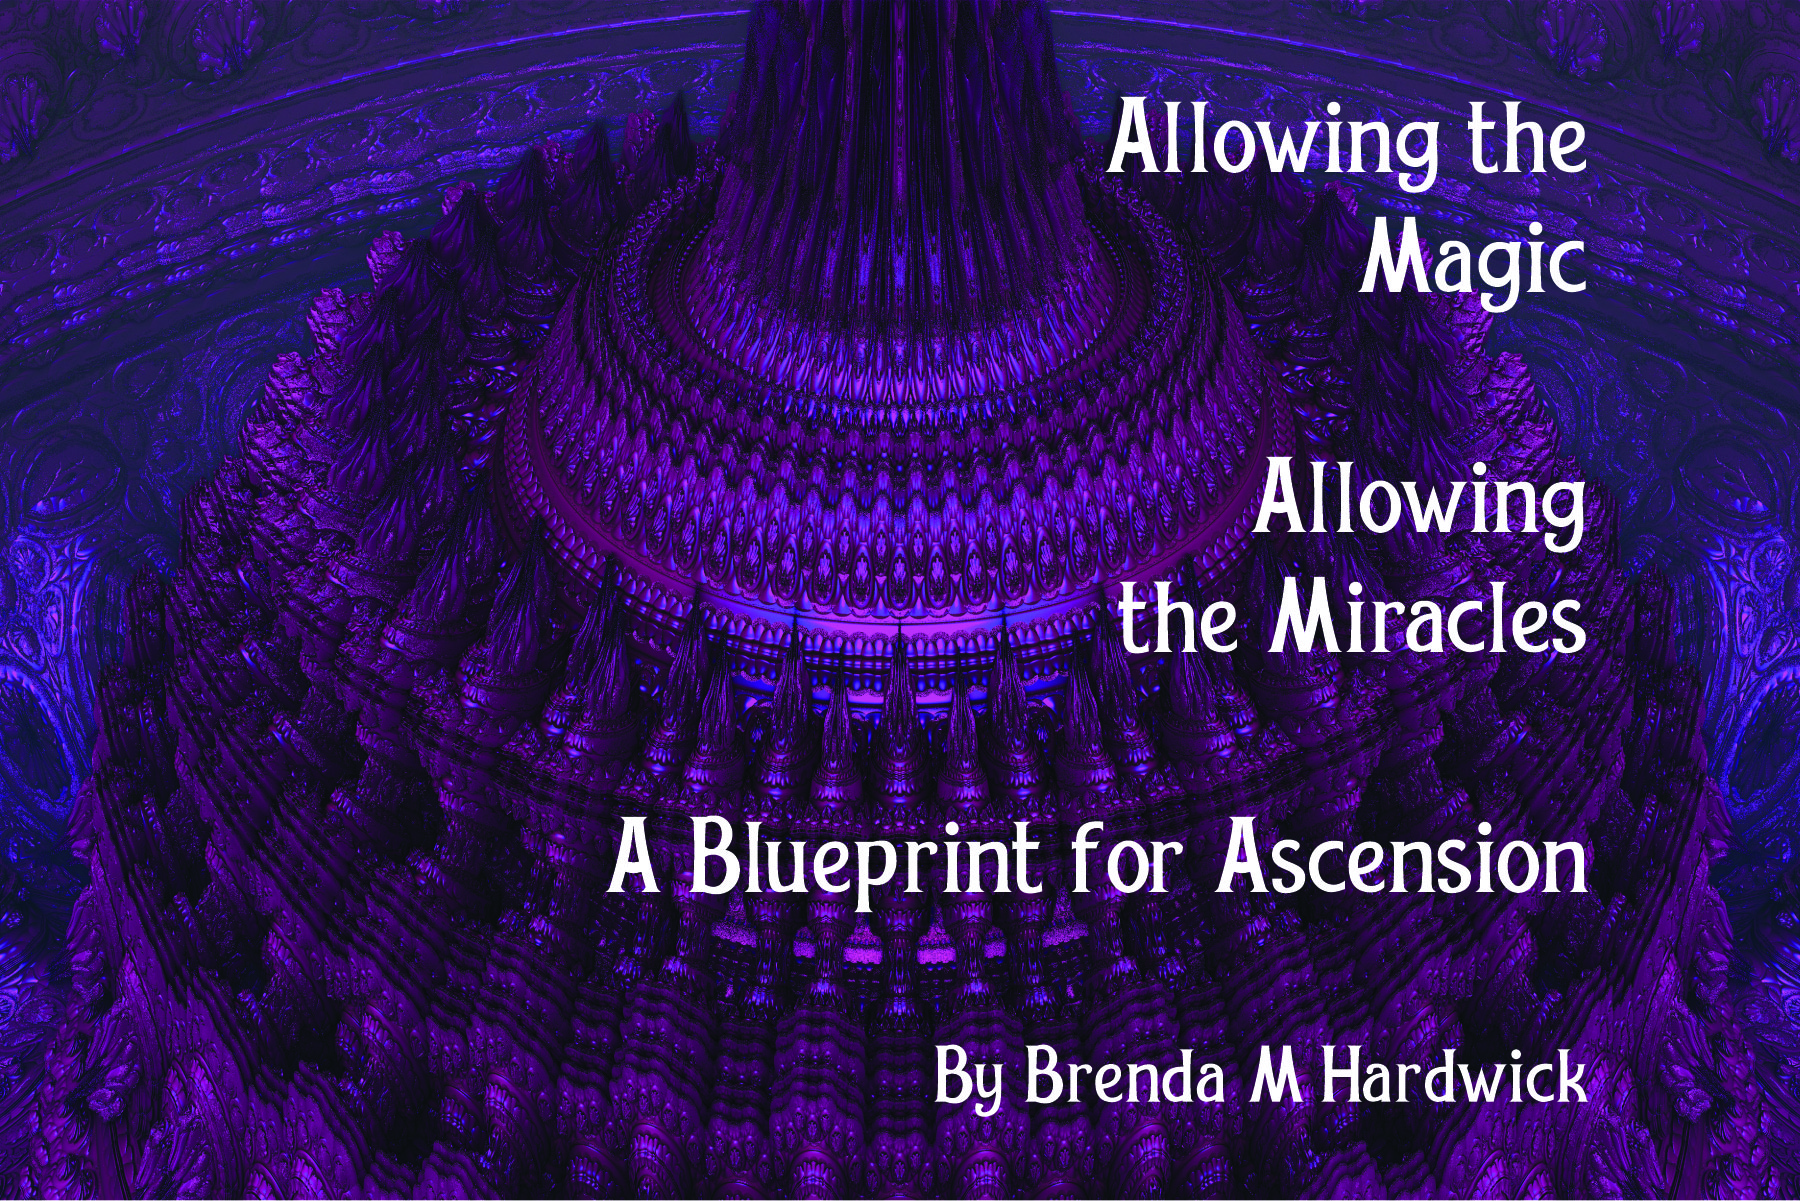 Allowing The Magic, Allowing the Miracles, A Blueprint to Ascension - Click here to purchase!